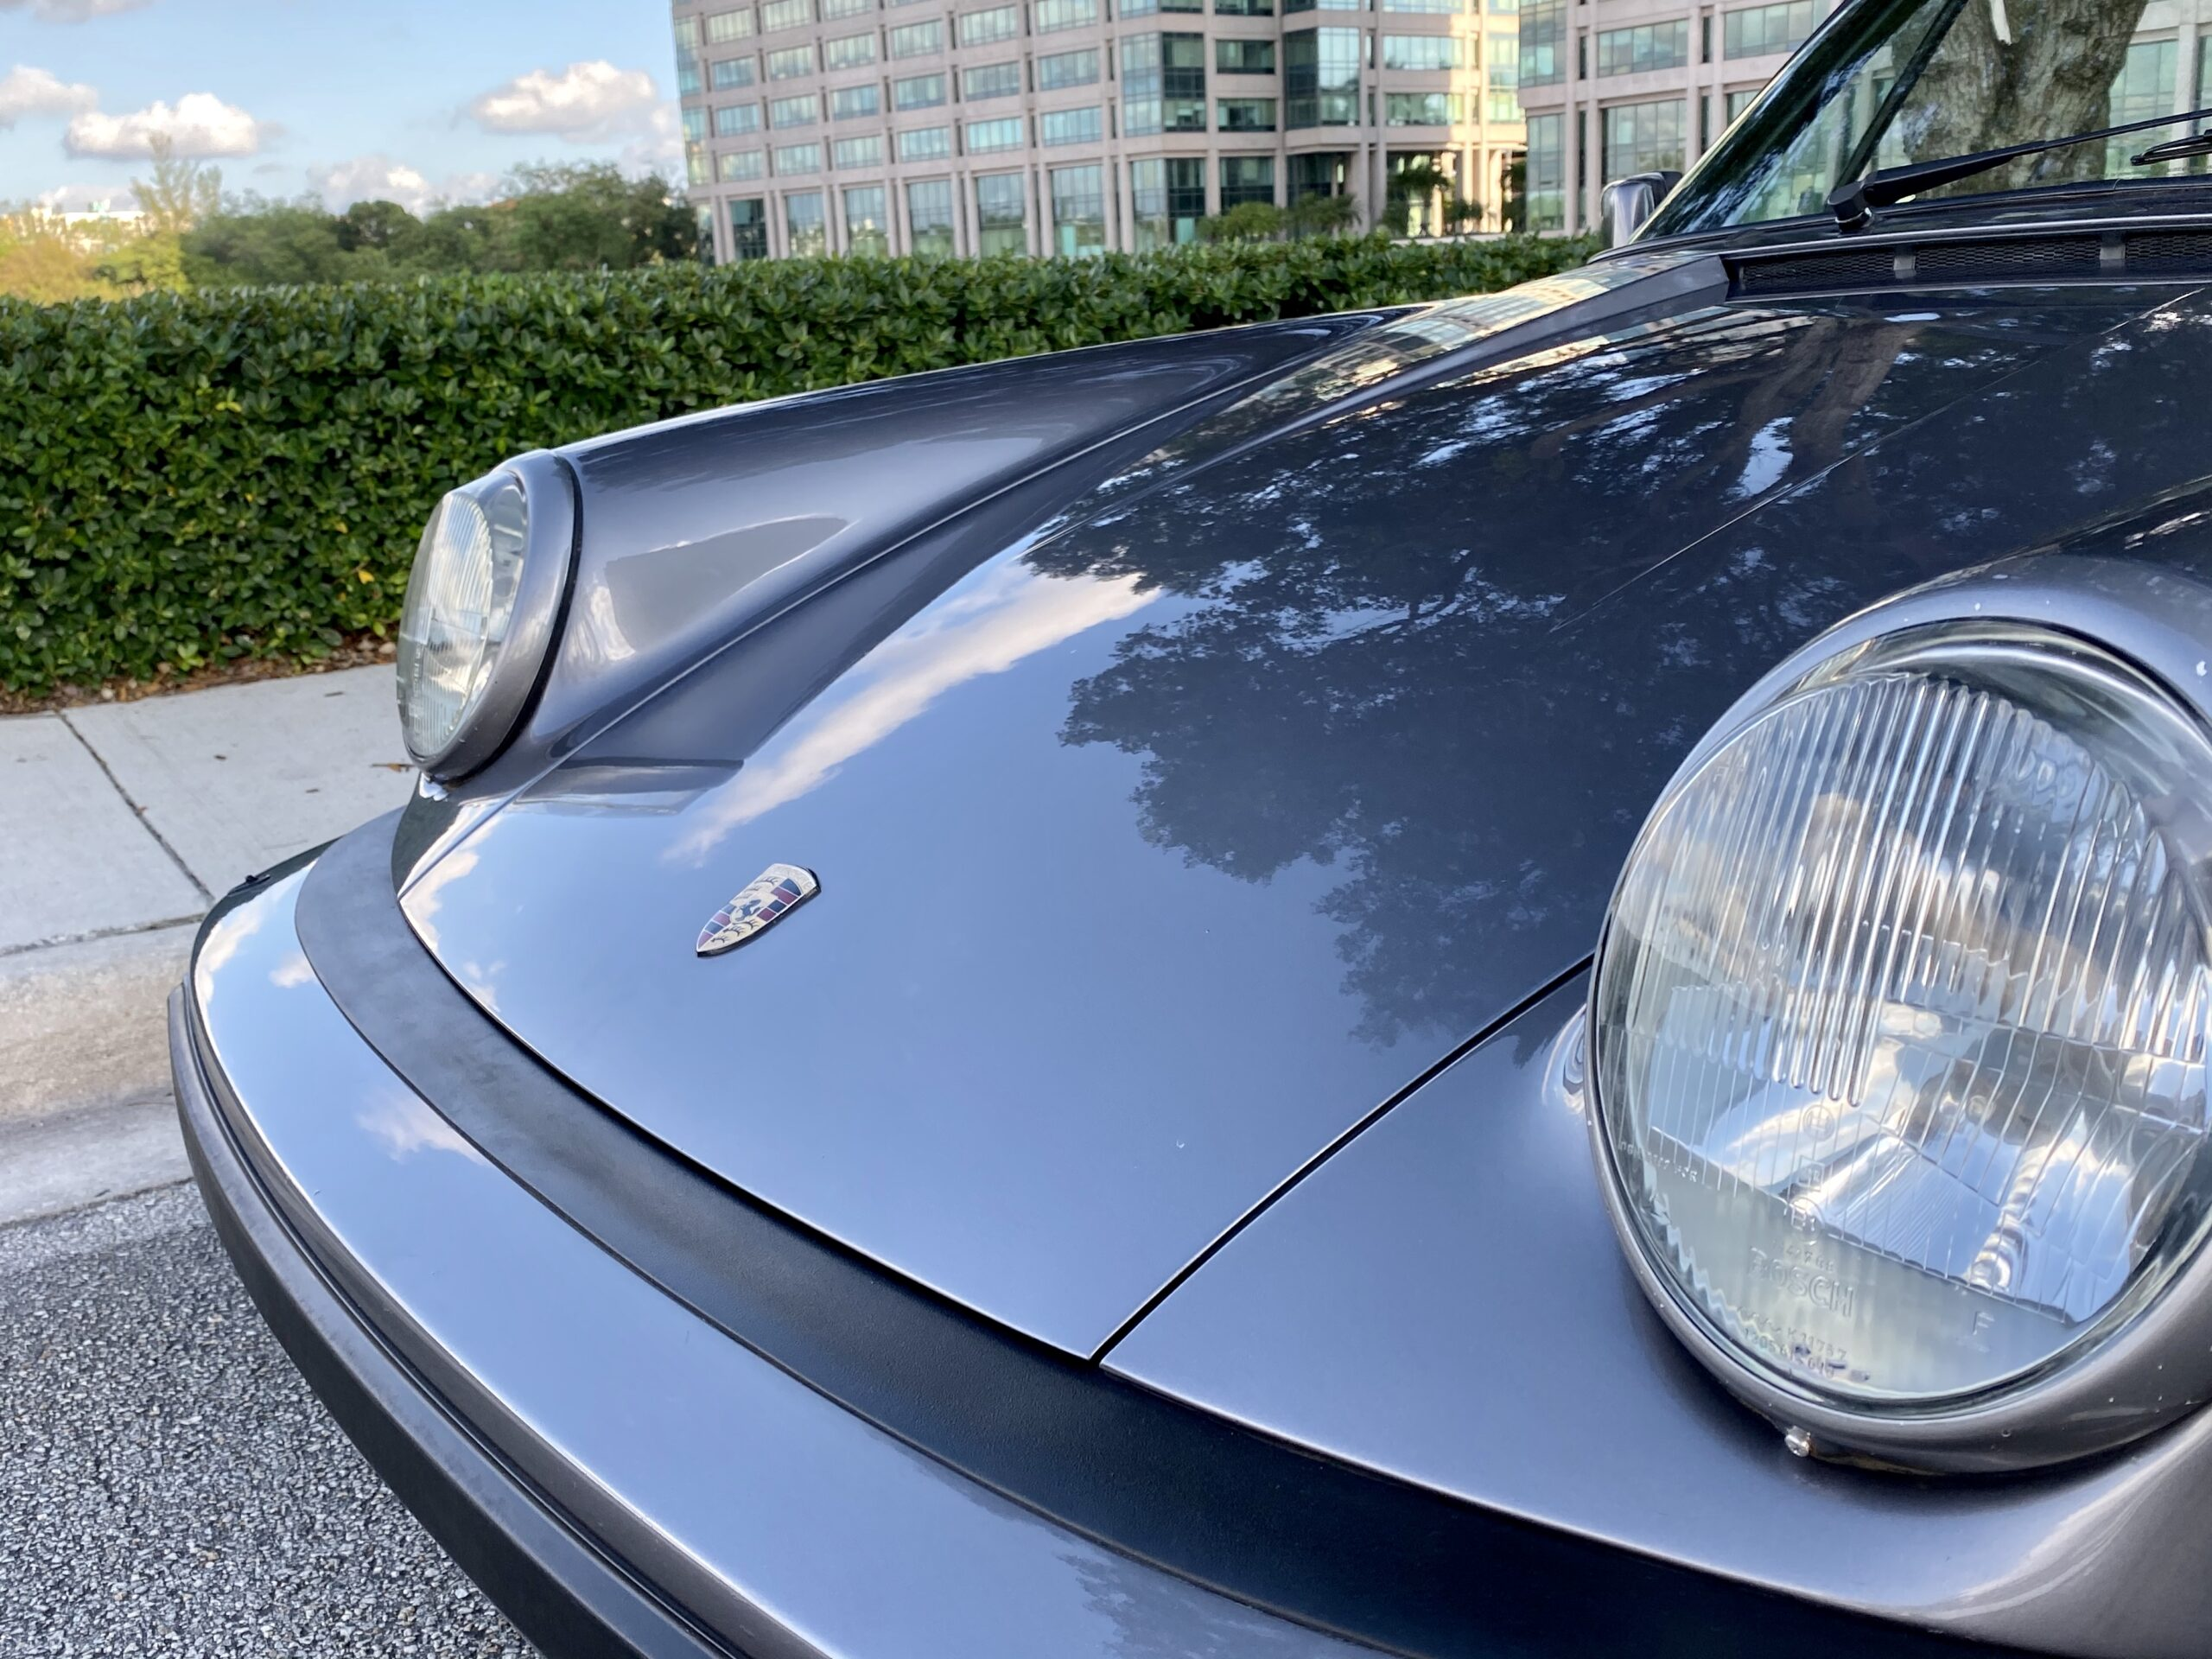 1985 Porsche 911 M491 Widebody Turbo Look FACTORY WIDE BODY TURBO LOOK / M491 / ONLY 39,000 MILES / SPORT SEATS /CABRIOLET